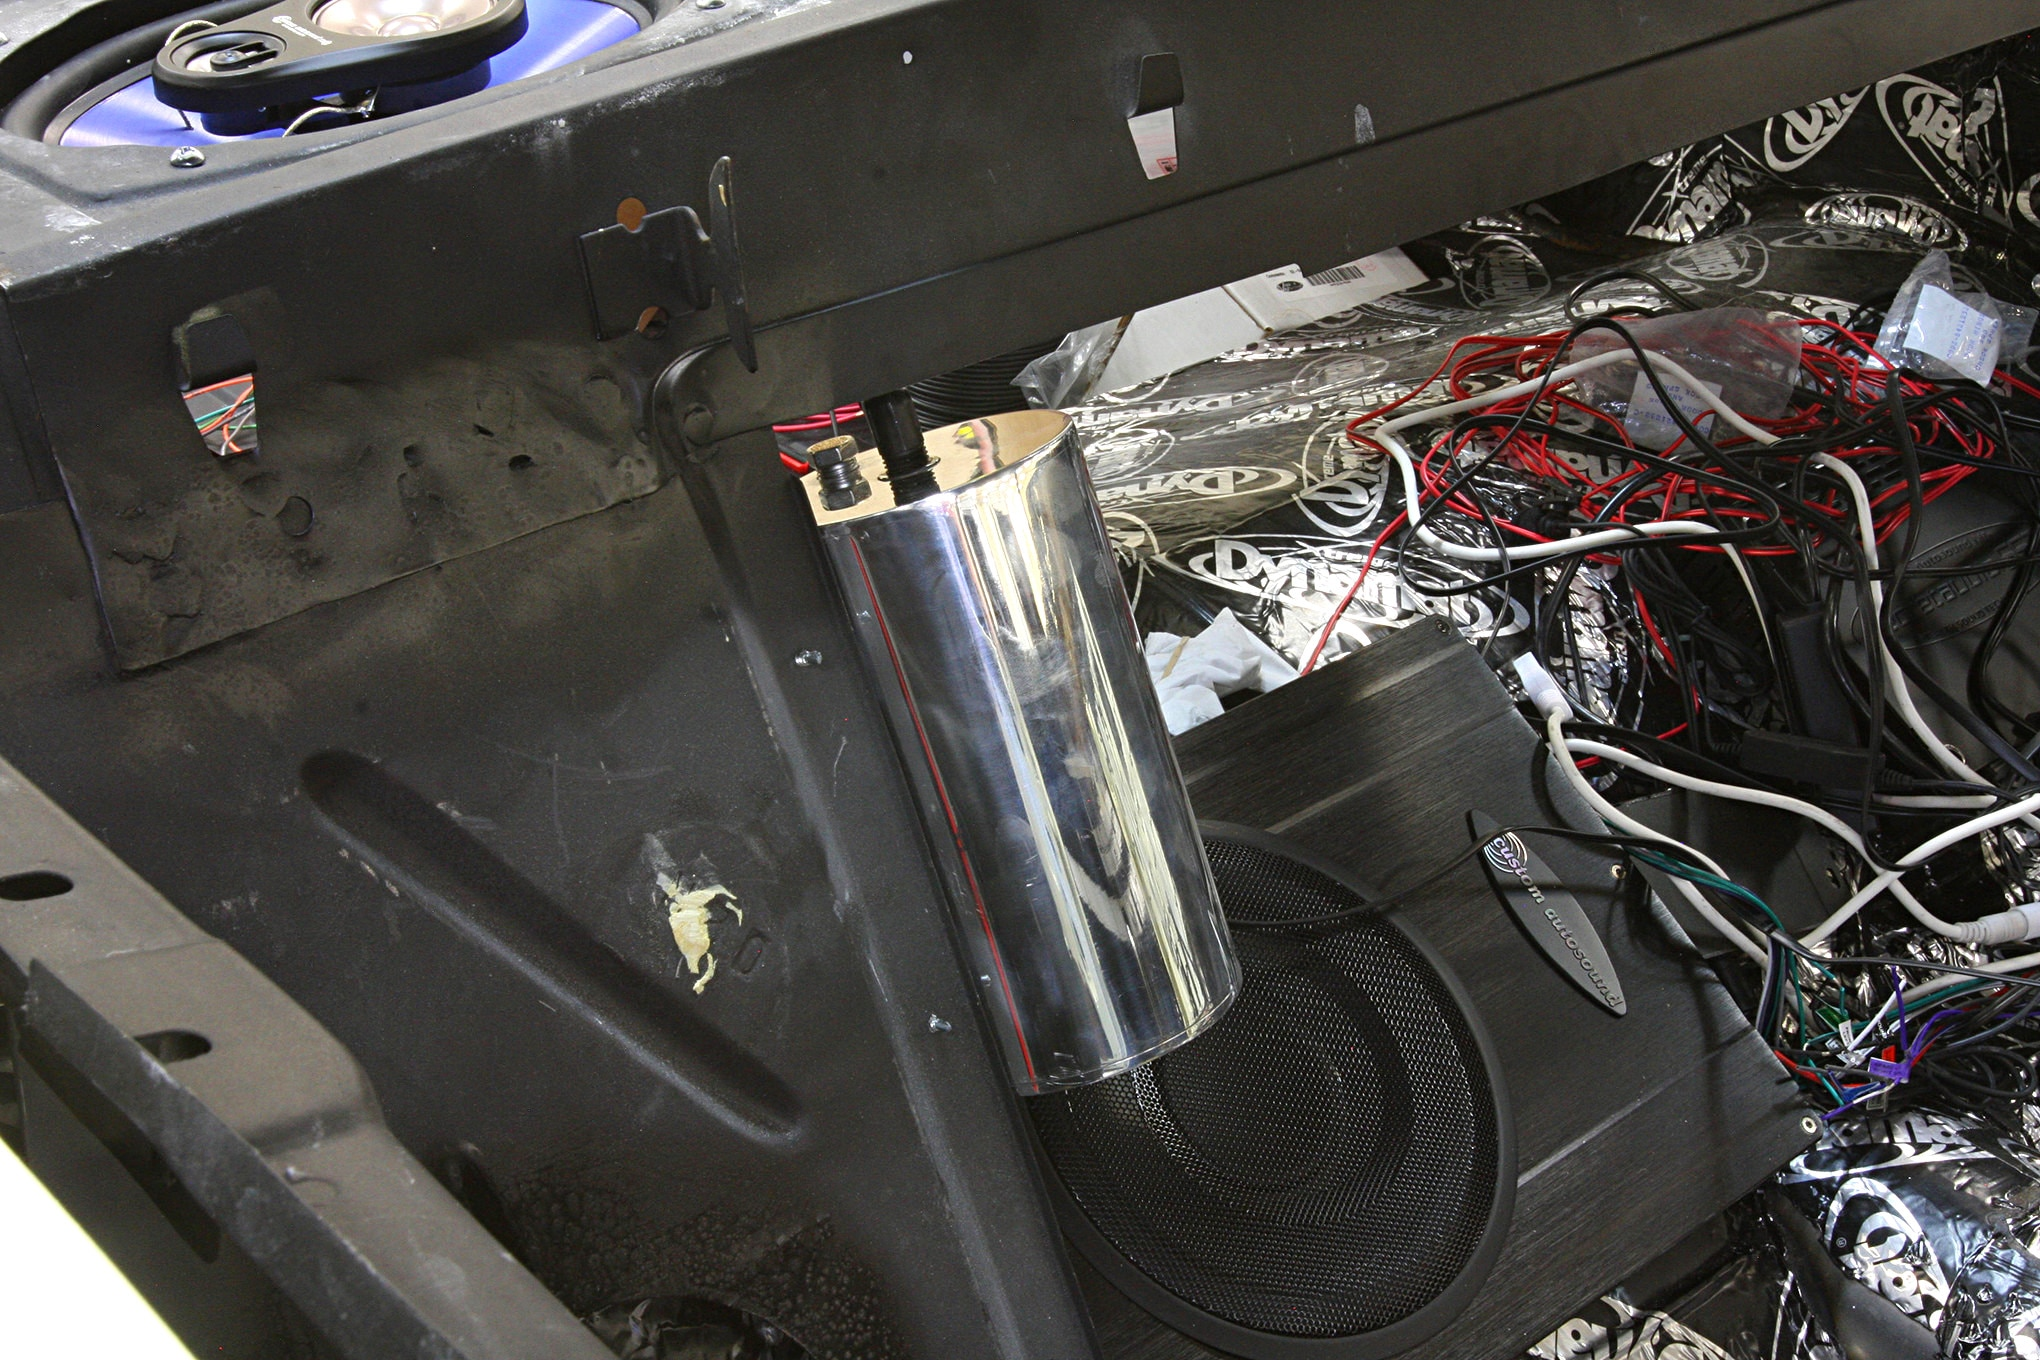 To prevent the odor associated with a vented gas tank HRBD installed one of their evaporative control canisters in the trunk.